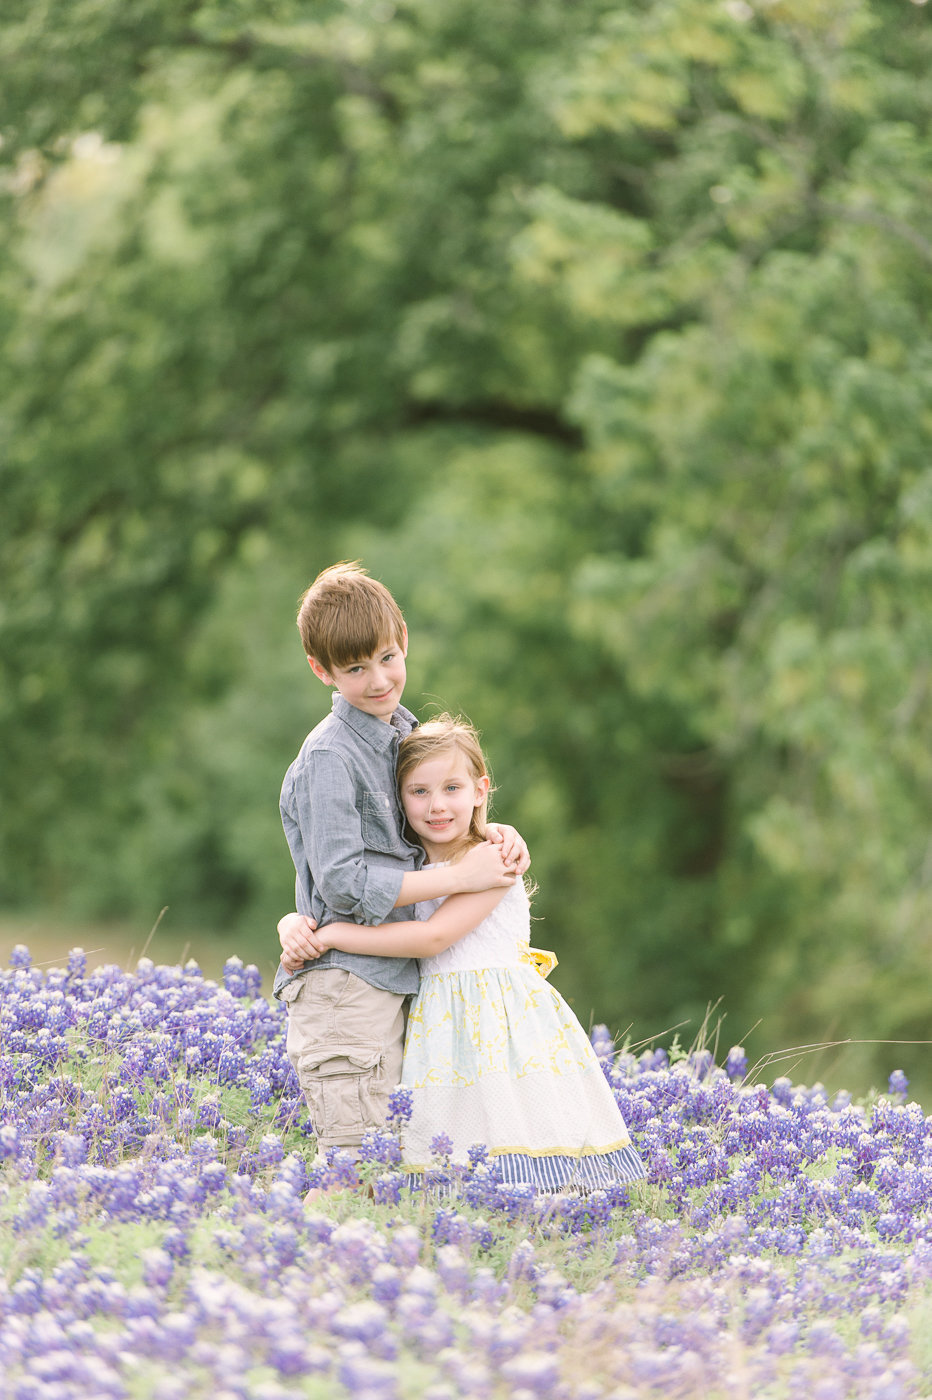 bluebonnet-texas-family-portrait-photographer-2